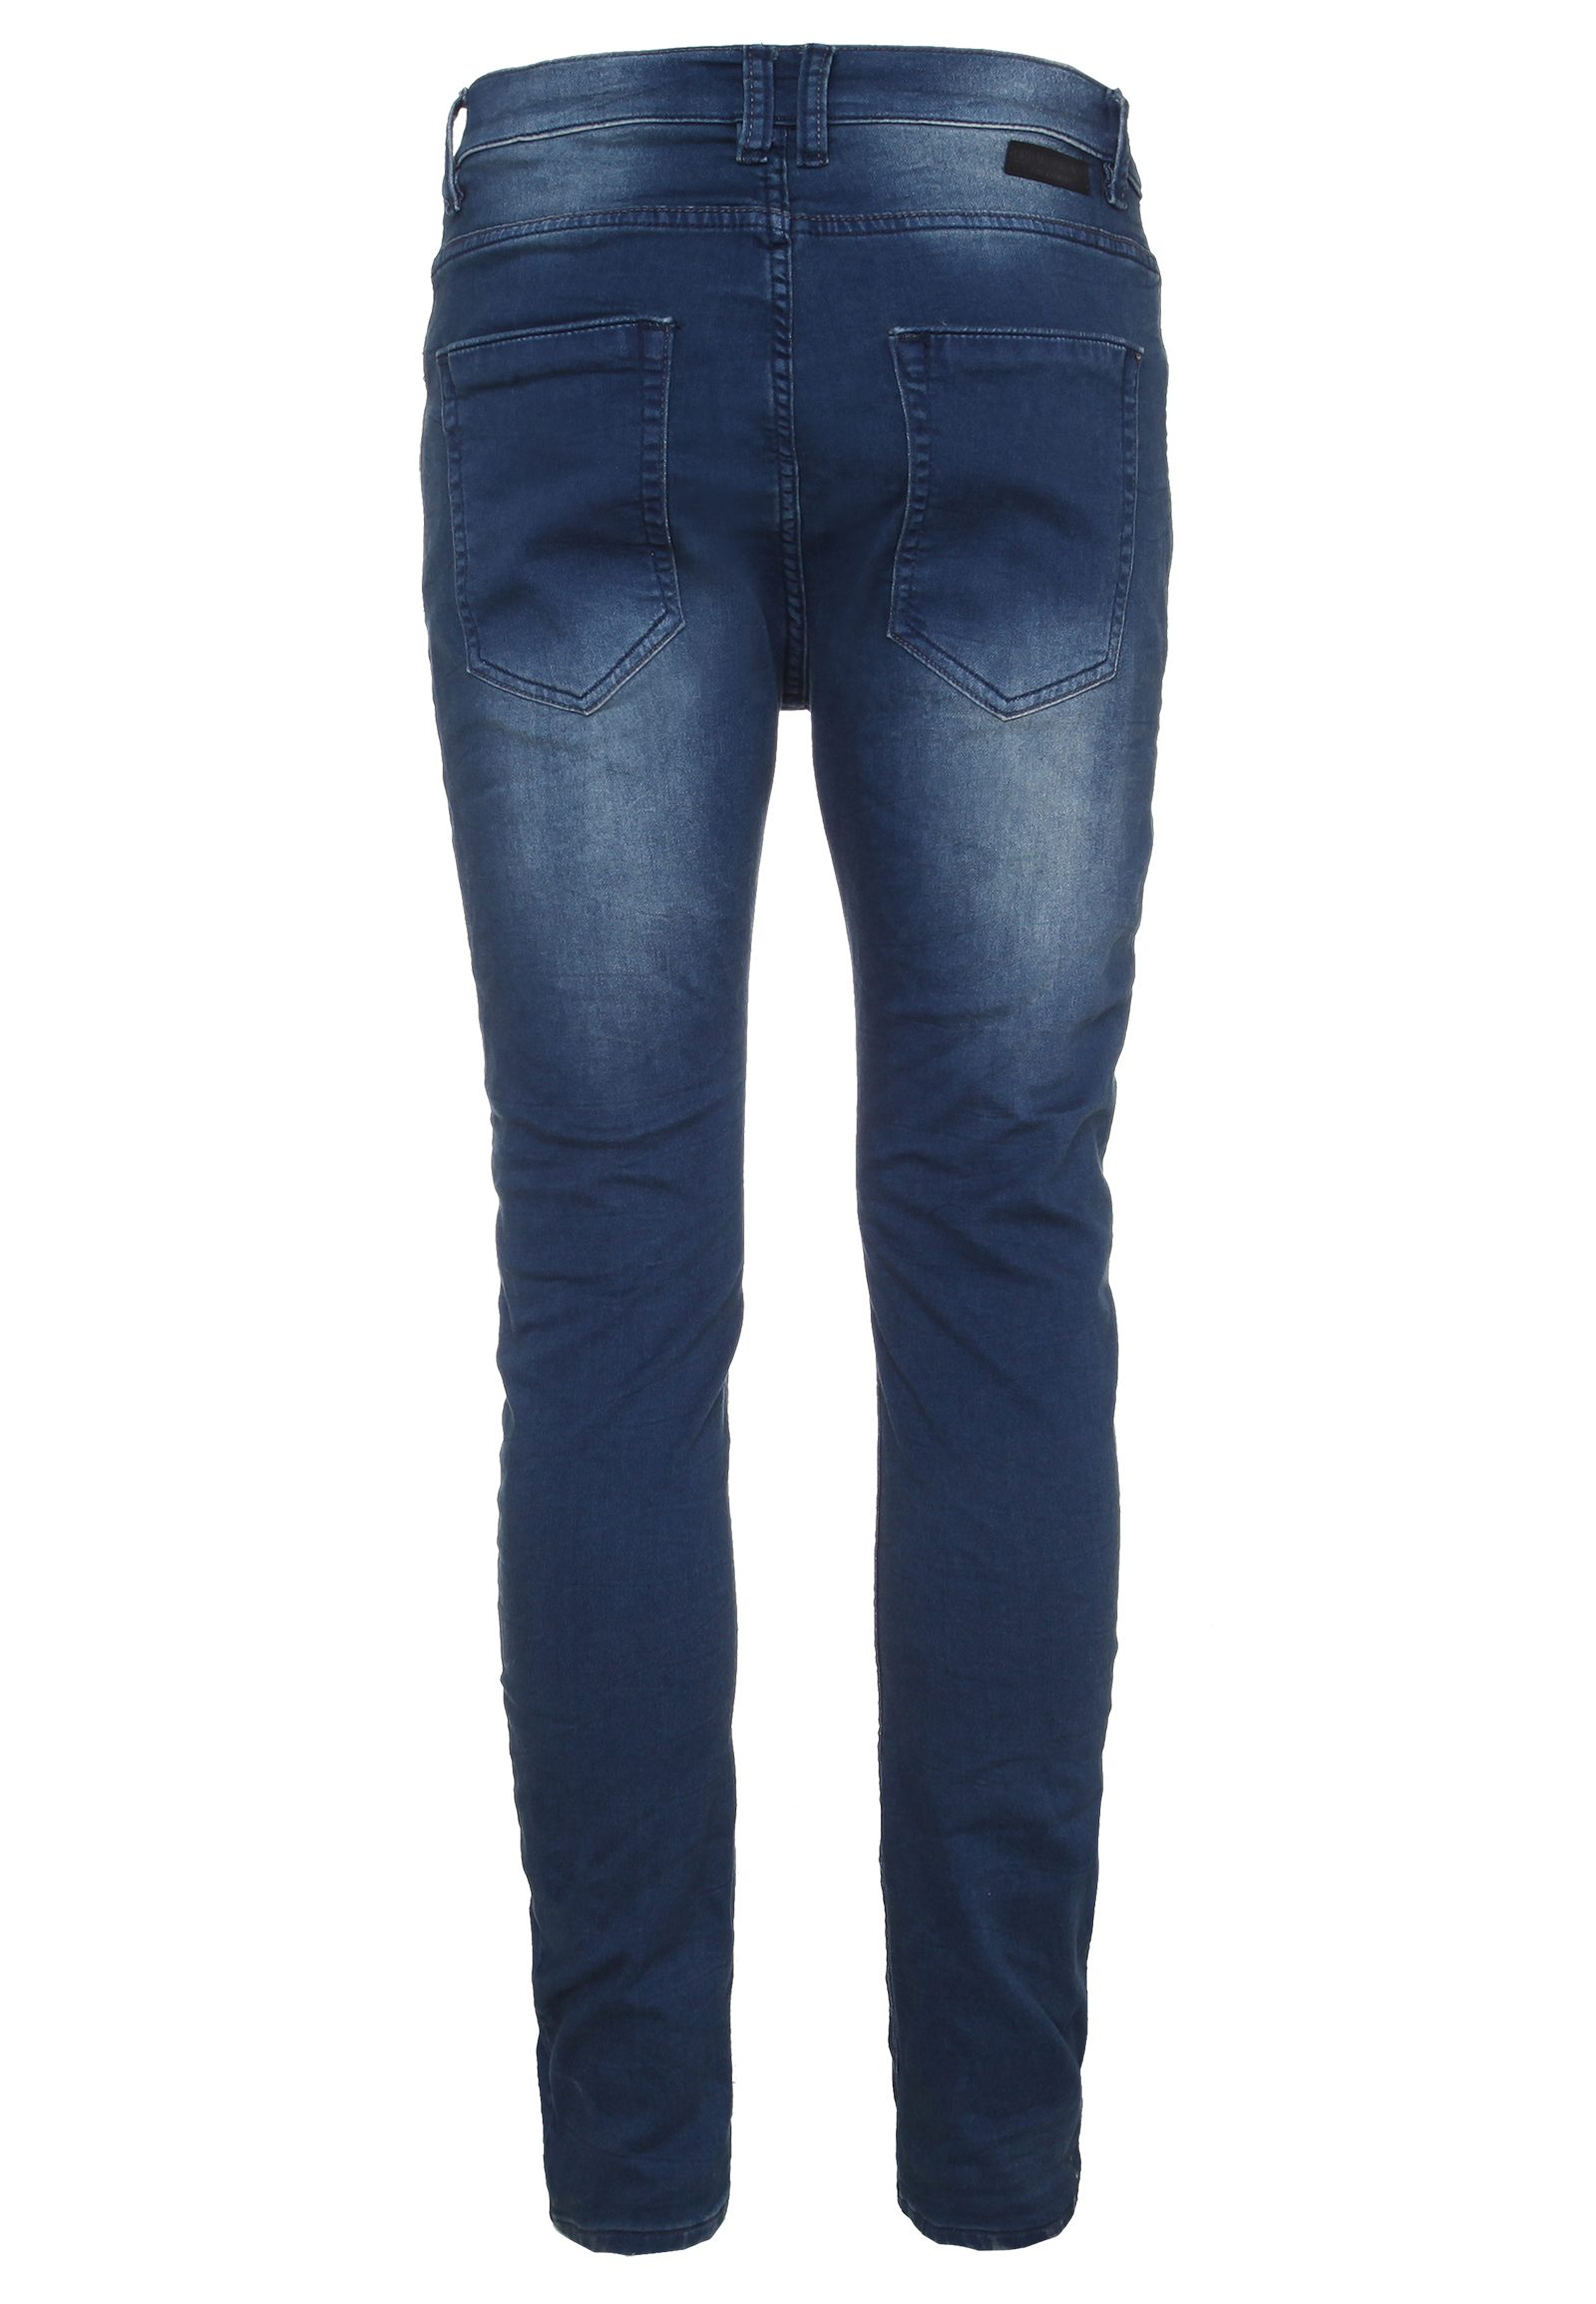 Vorschau: Blaue Herren Sweat Hose in Denim-Optik